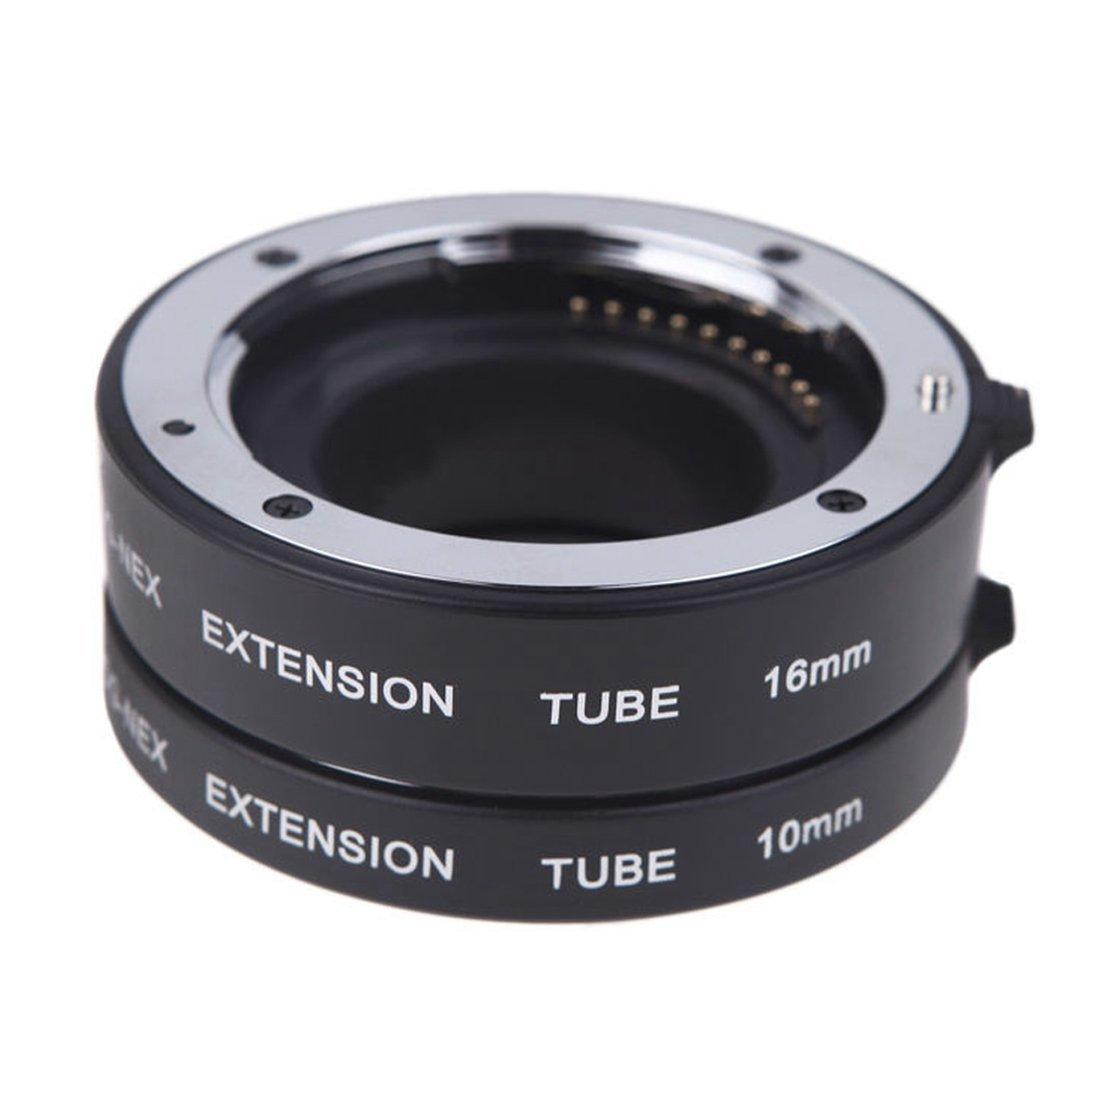 Extension Tube Set - SODIAL(R)Macro Auto Focus Extension DG Tube Set Ring Metal Mount for Sony E-mout NEX